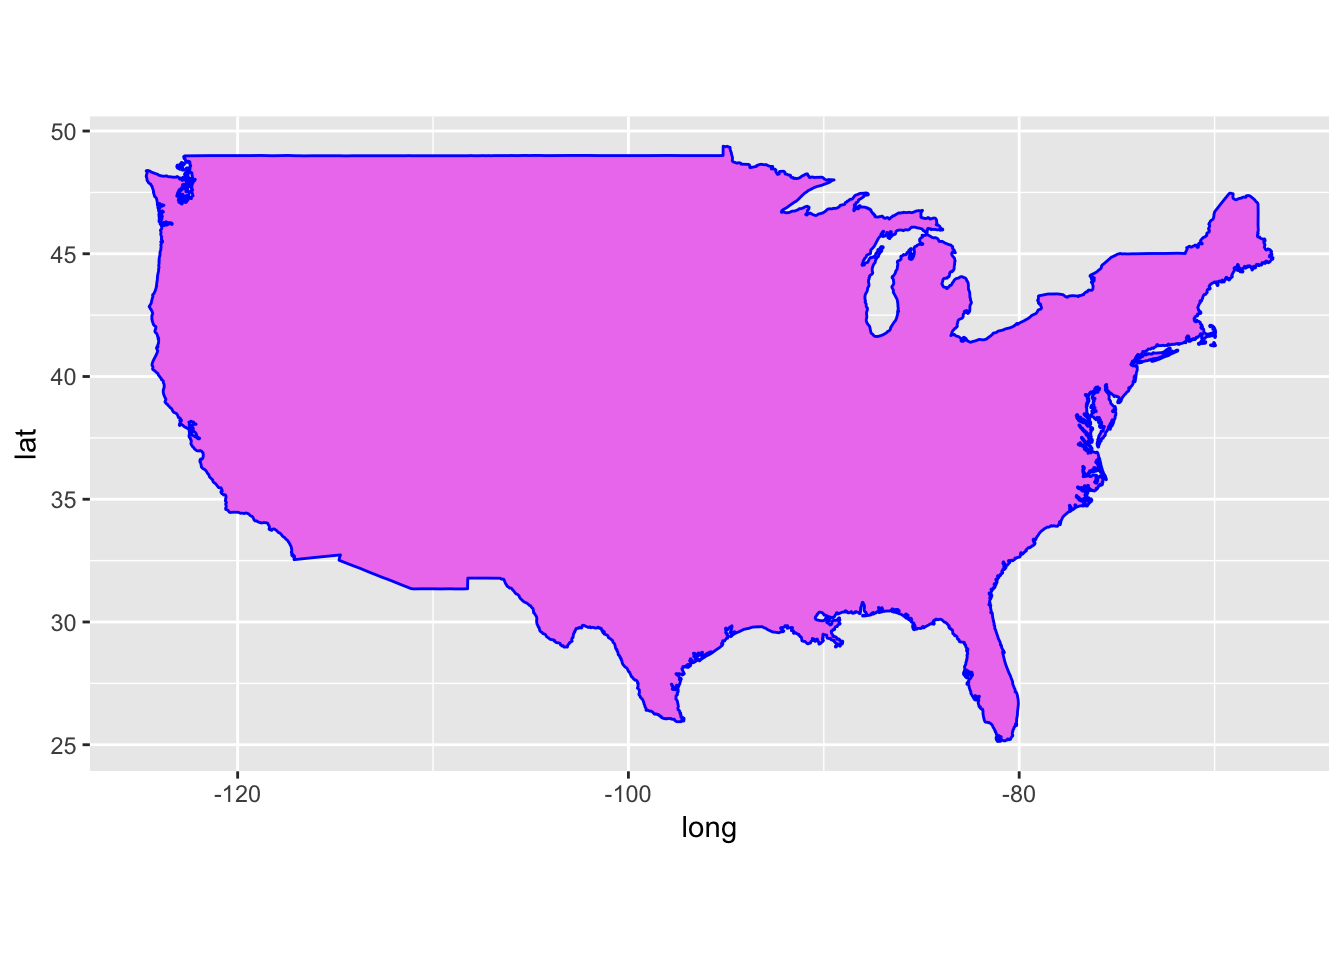 Gg1 Ggplot Geom Polygon Data Usa Aes X Long Y Lat Group Group Fill Violet Color Blue Coord Quickmap Gg1